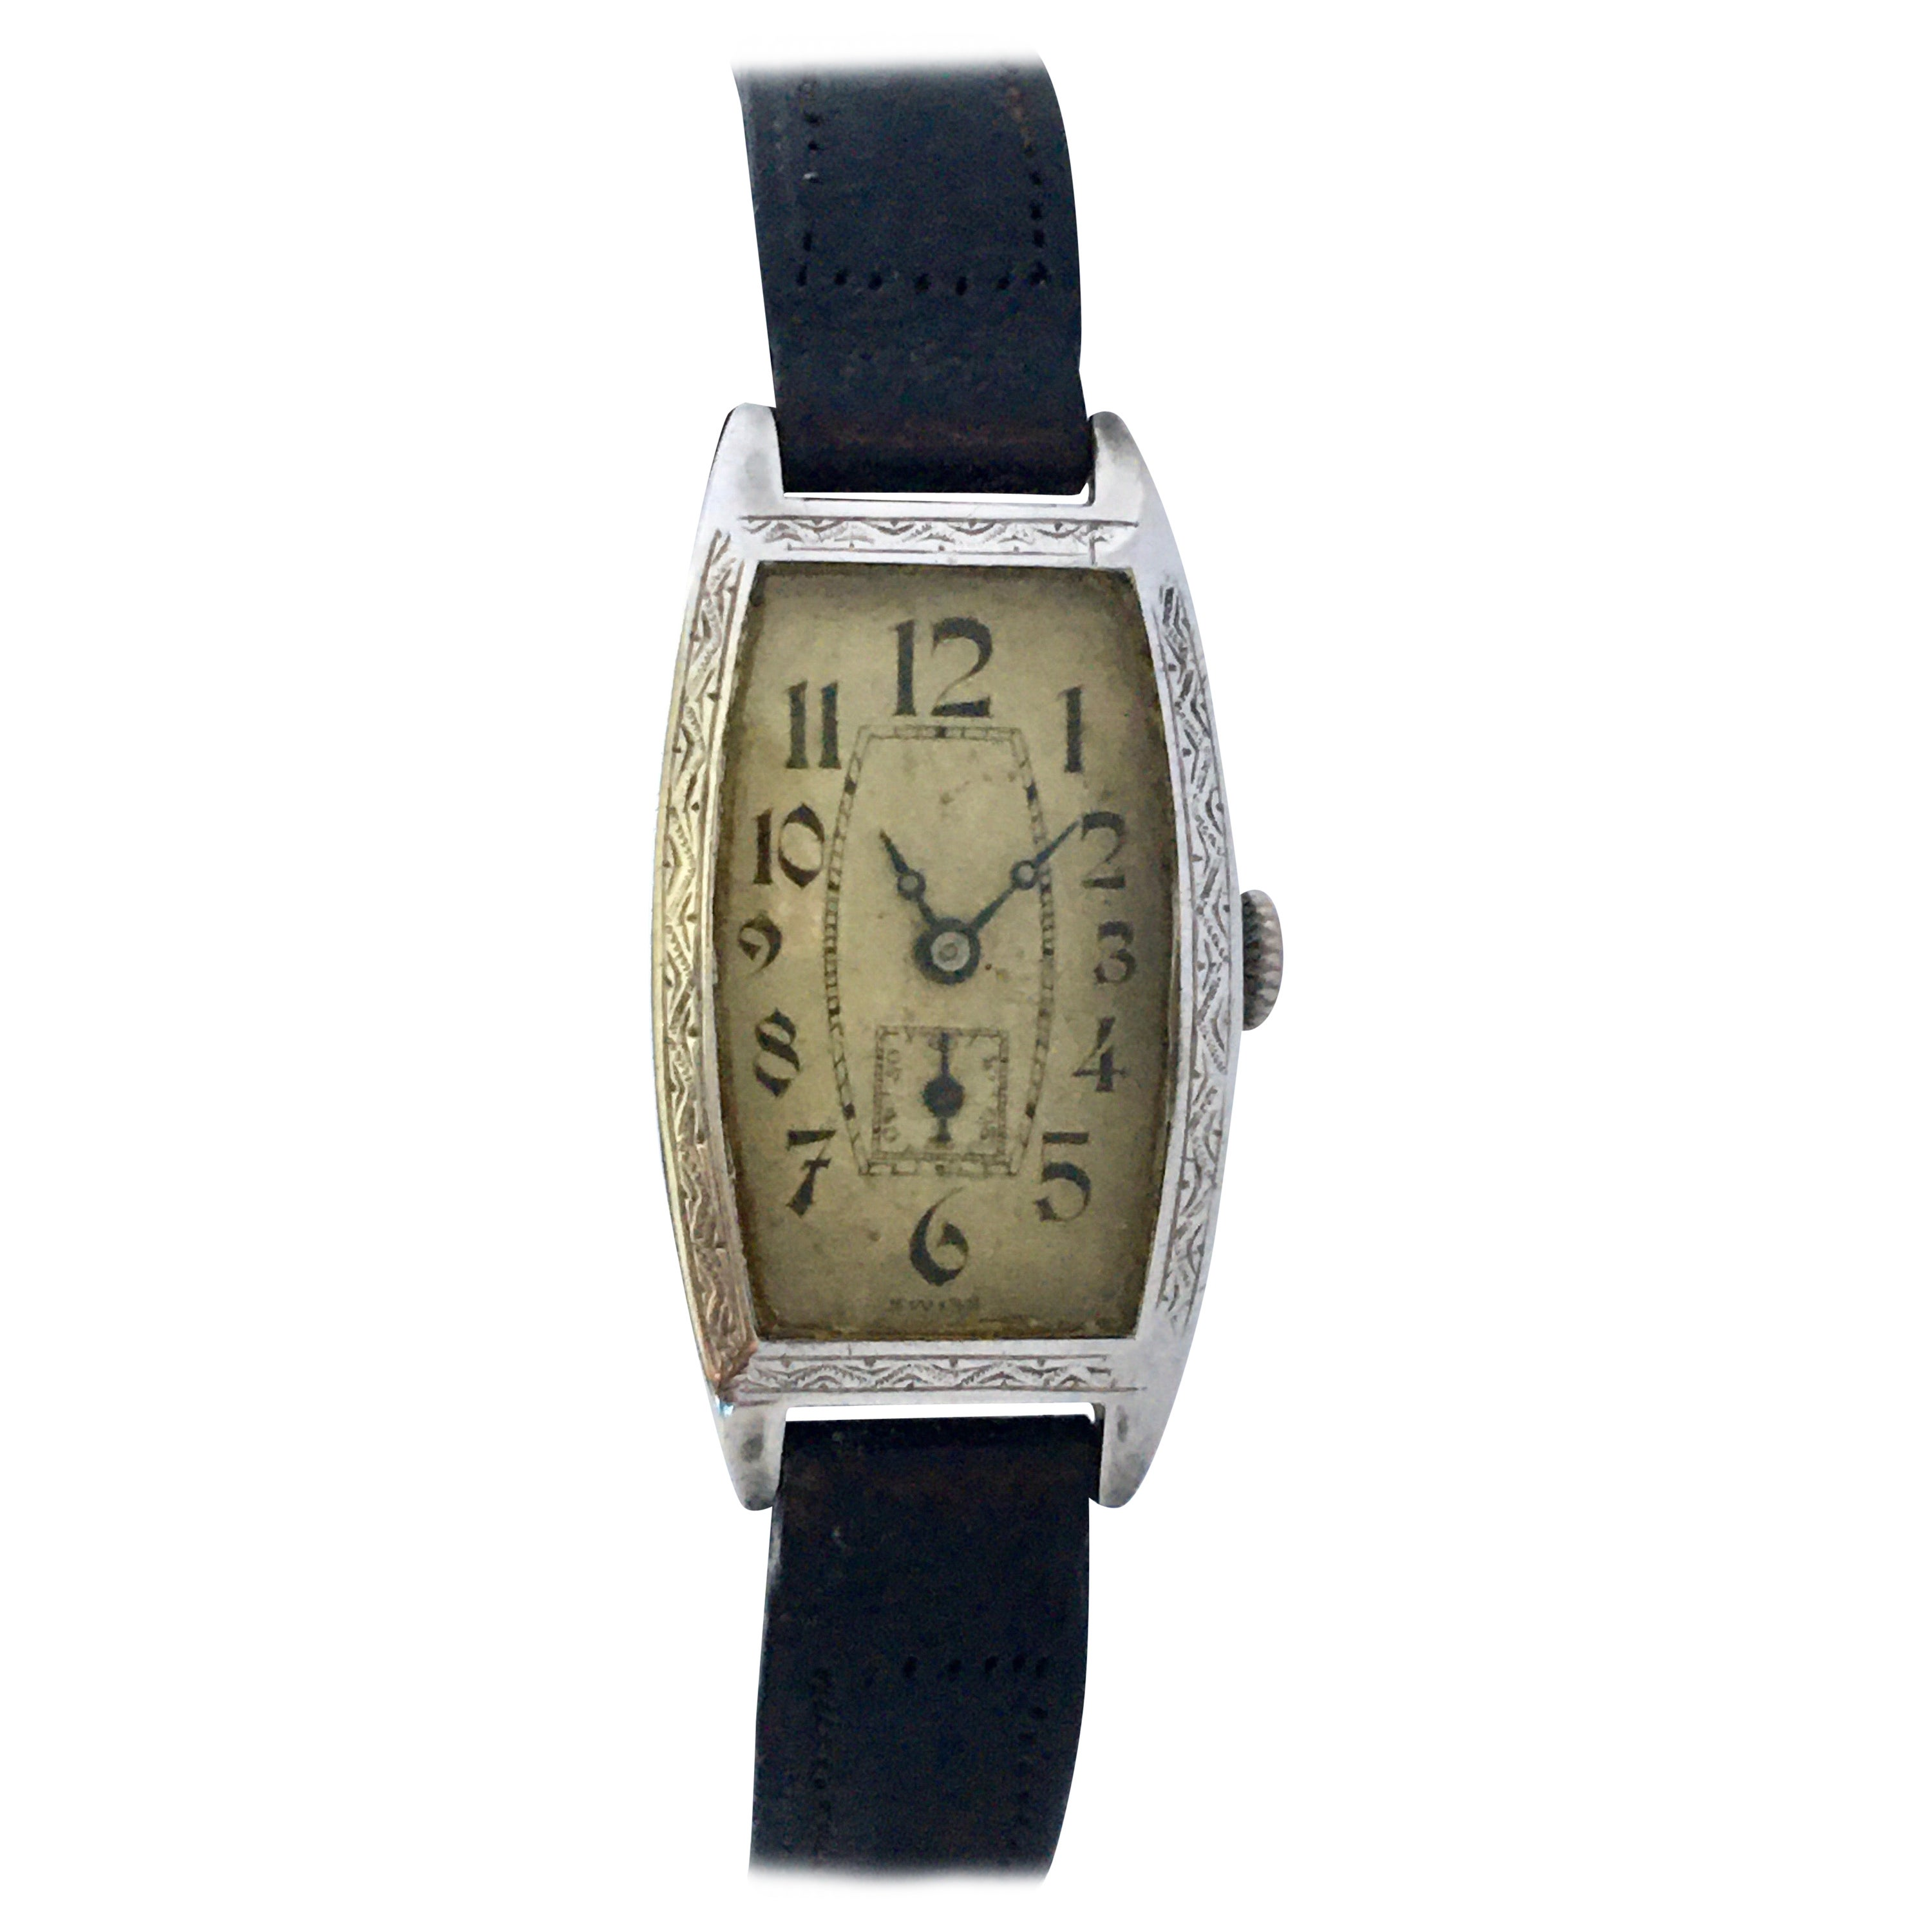 Vintage 1930s Silver Invicta Mechanical Watch